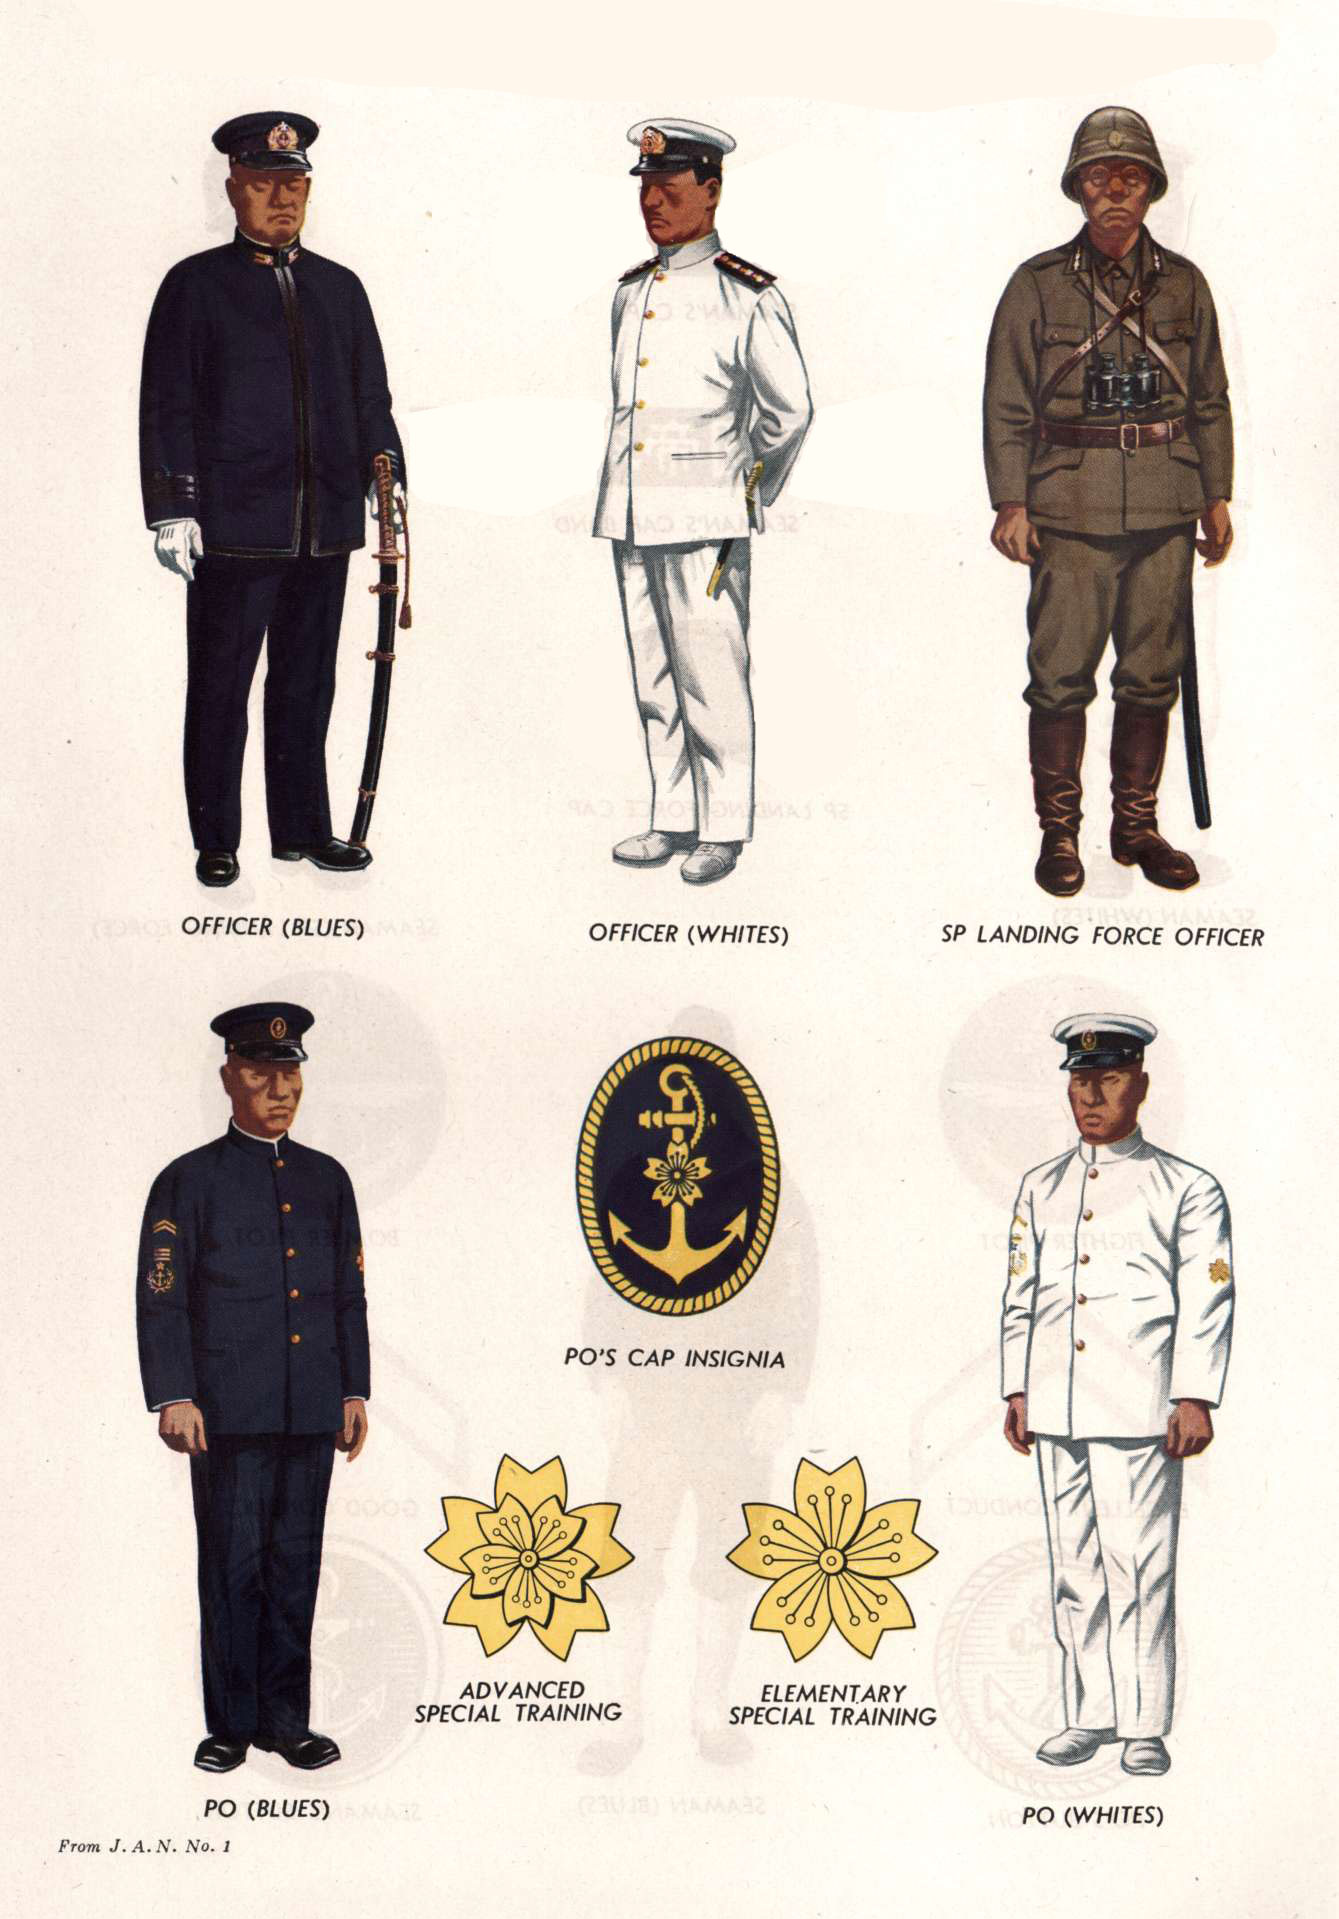 PLATE V.--NAVY UNIFORMS: OFFICERS AND PETTY OFFICERS